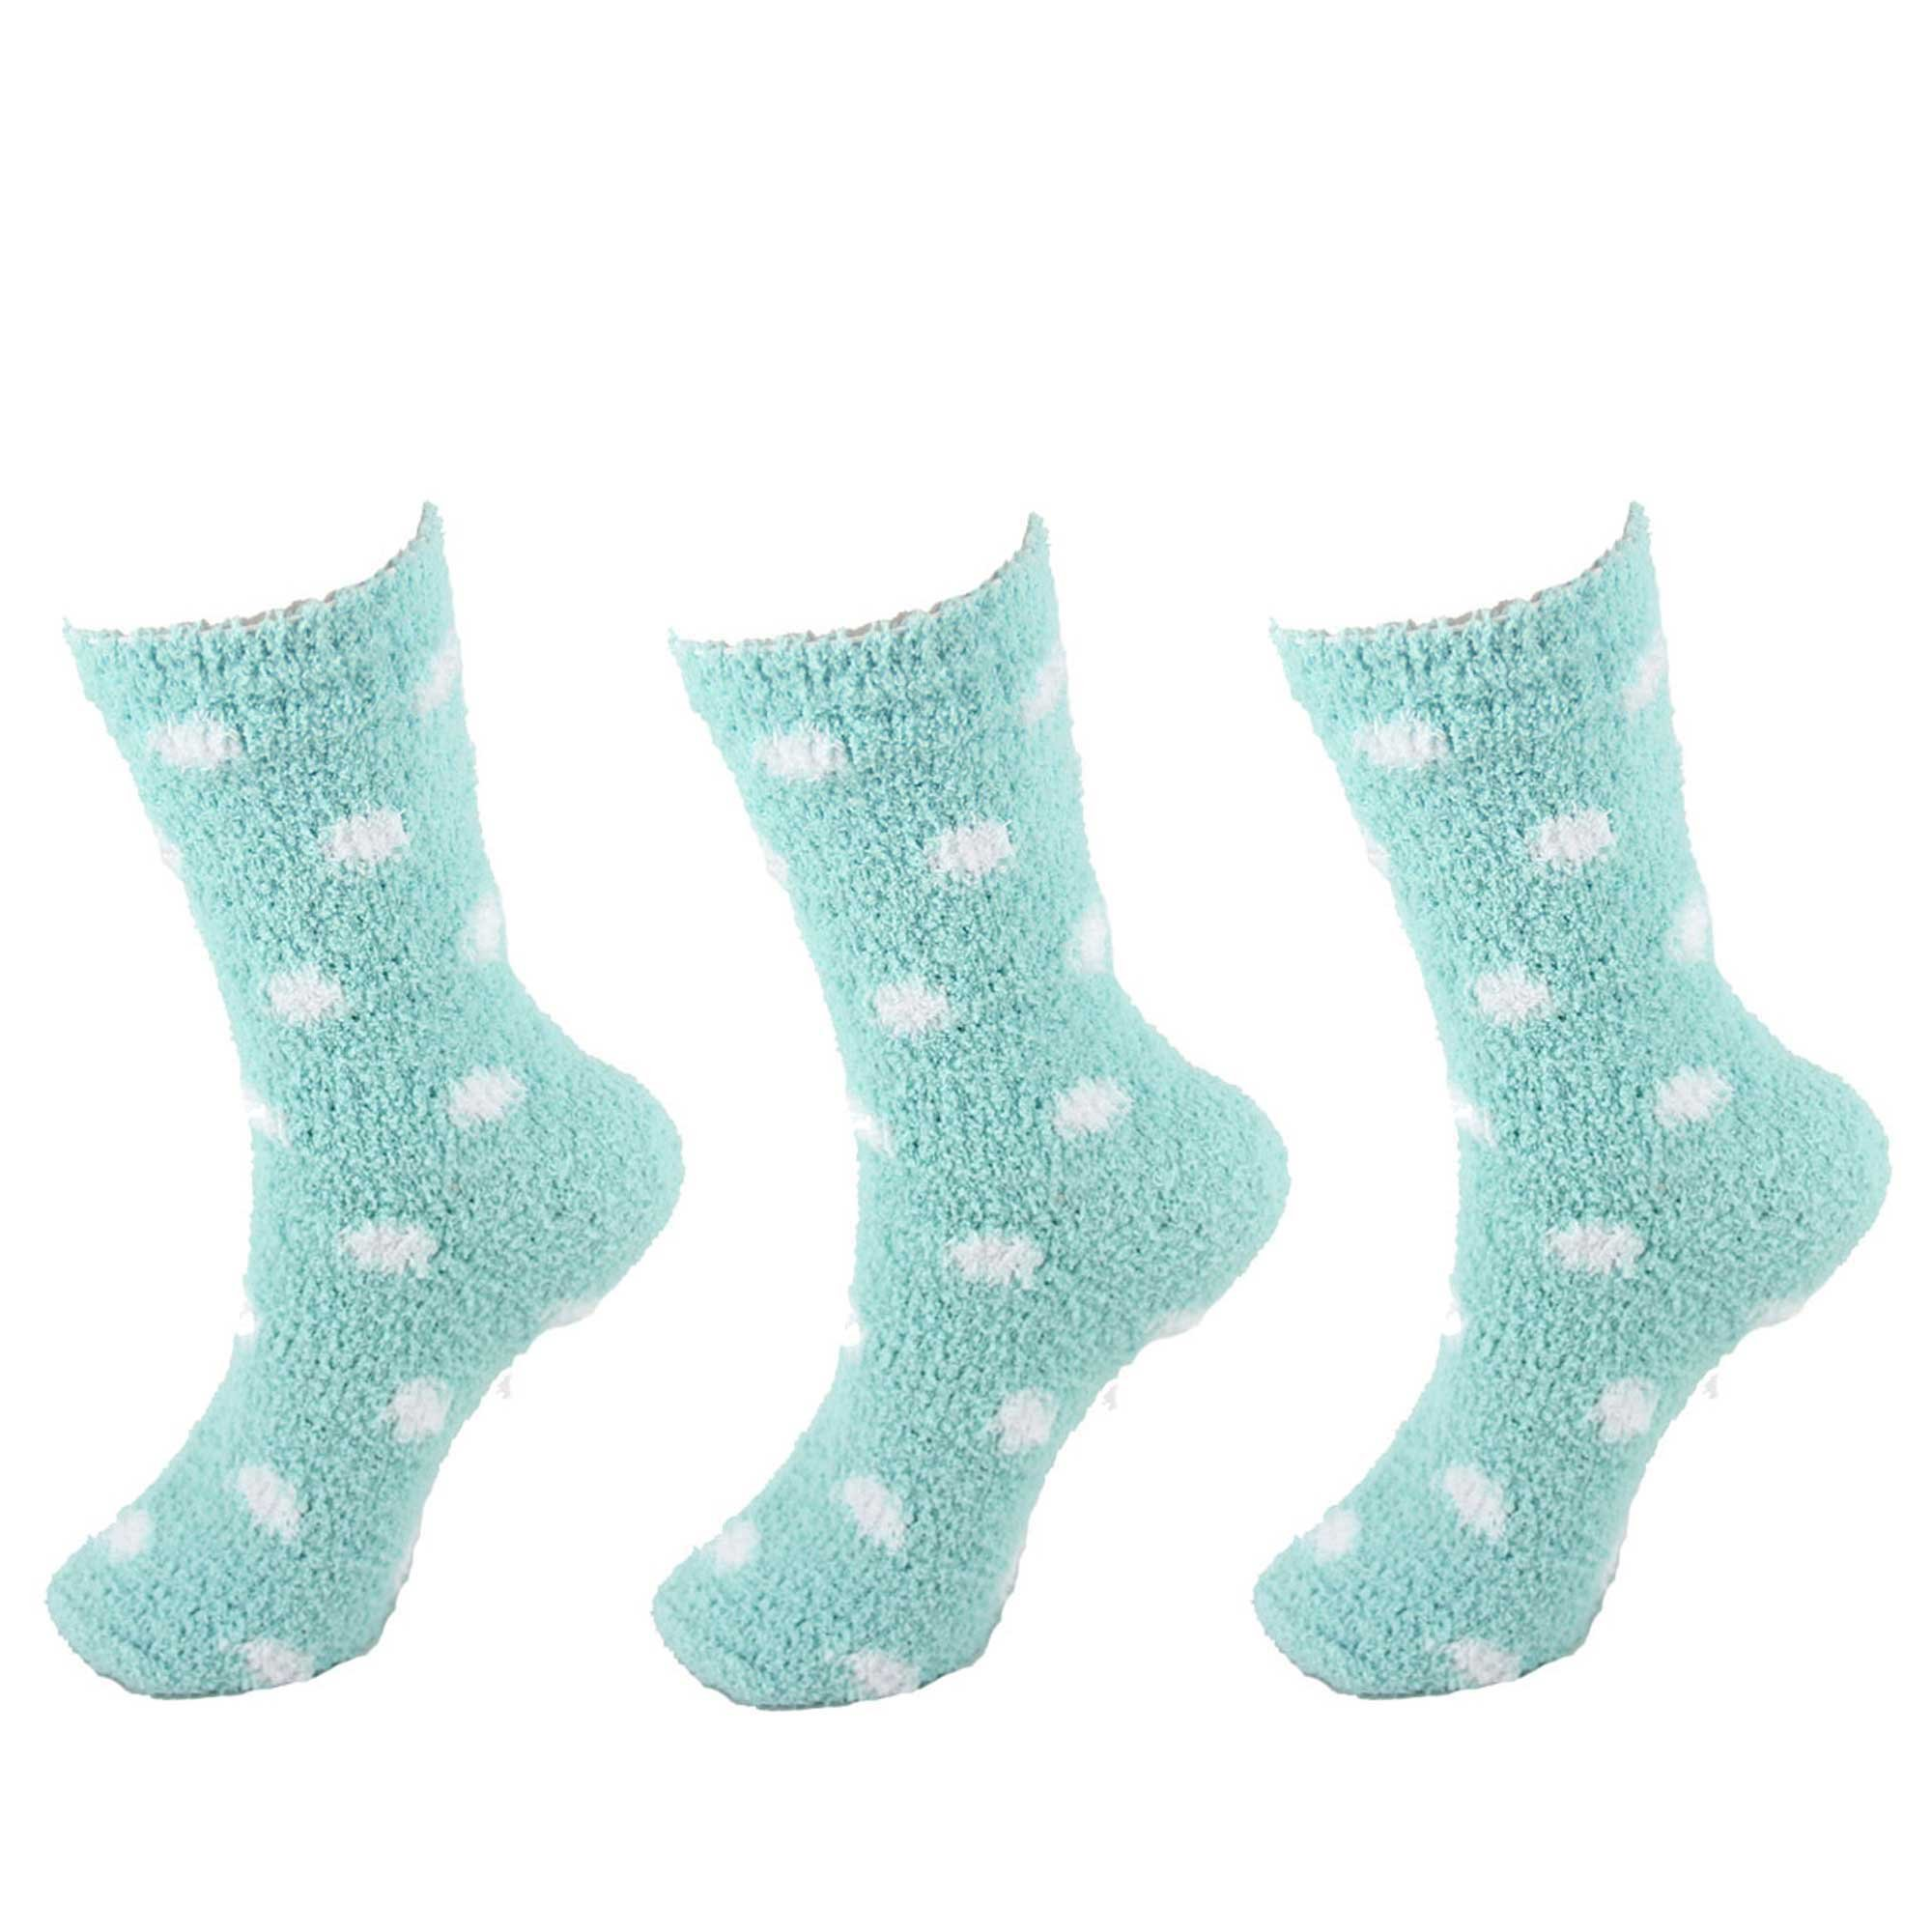 BambooMN - Super Soft Warm Microfiber Cozy Fuzzy Stripe/Polka Dot Socks